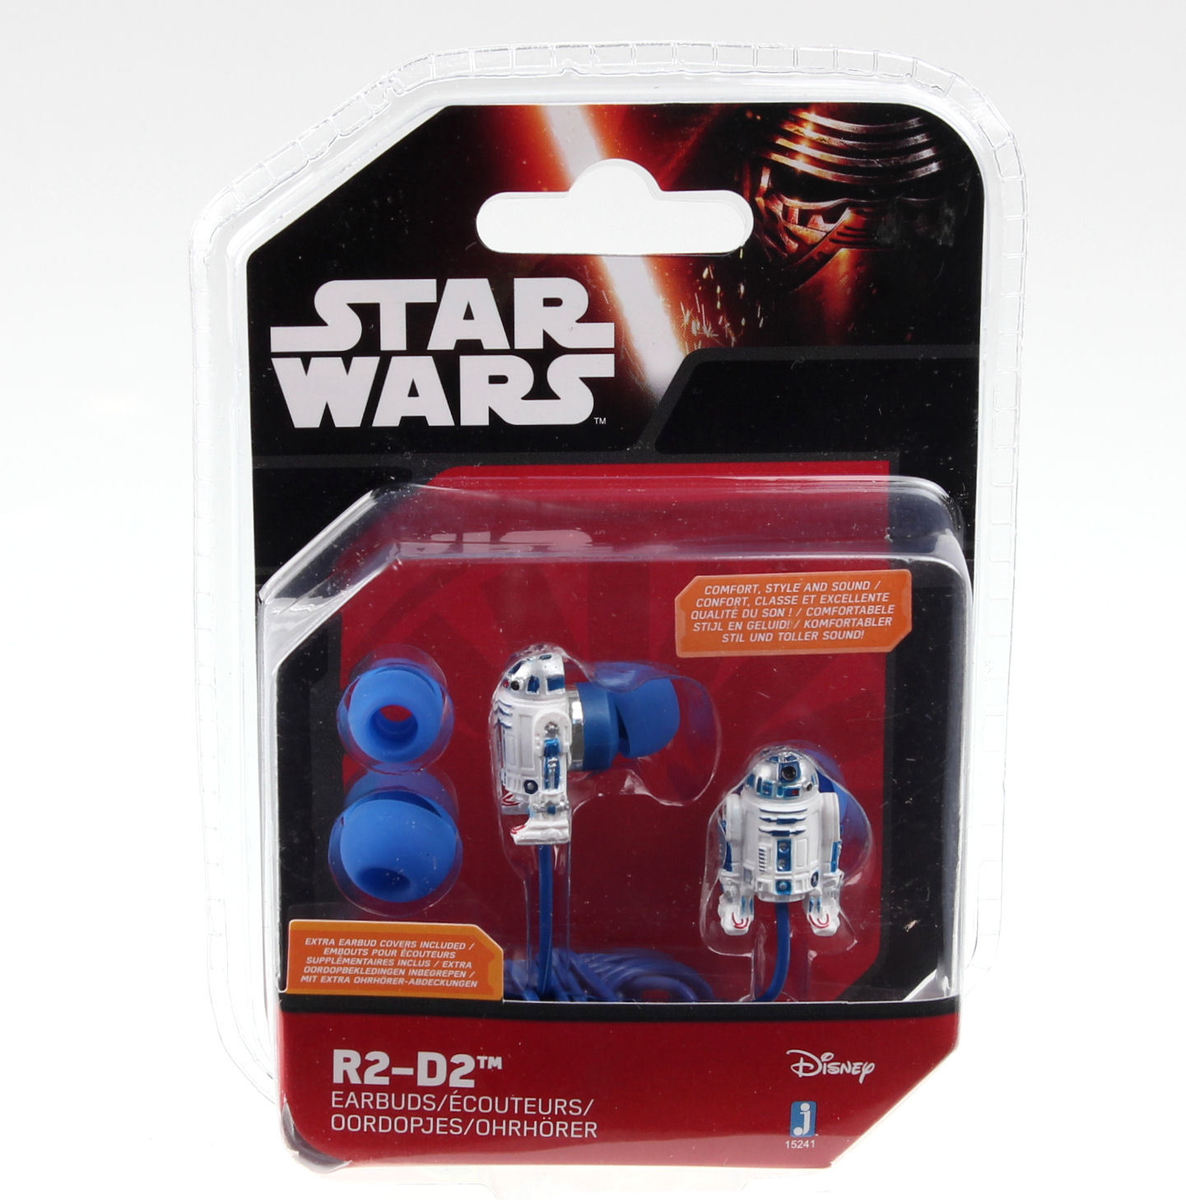 sluchátka Star Wars - R2-D2 - WhtBlue - JAZ15230(2)